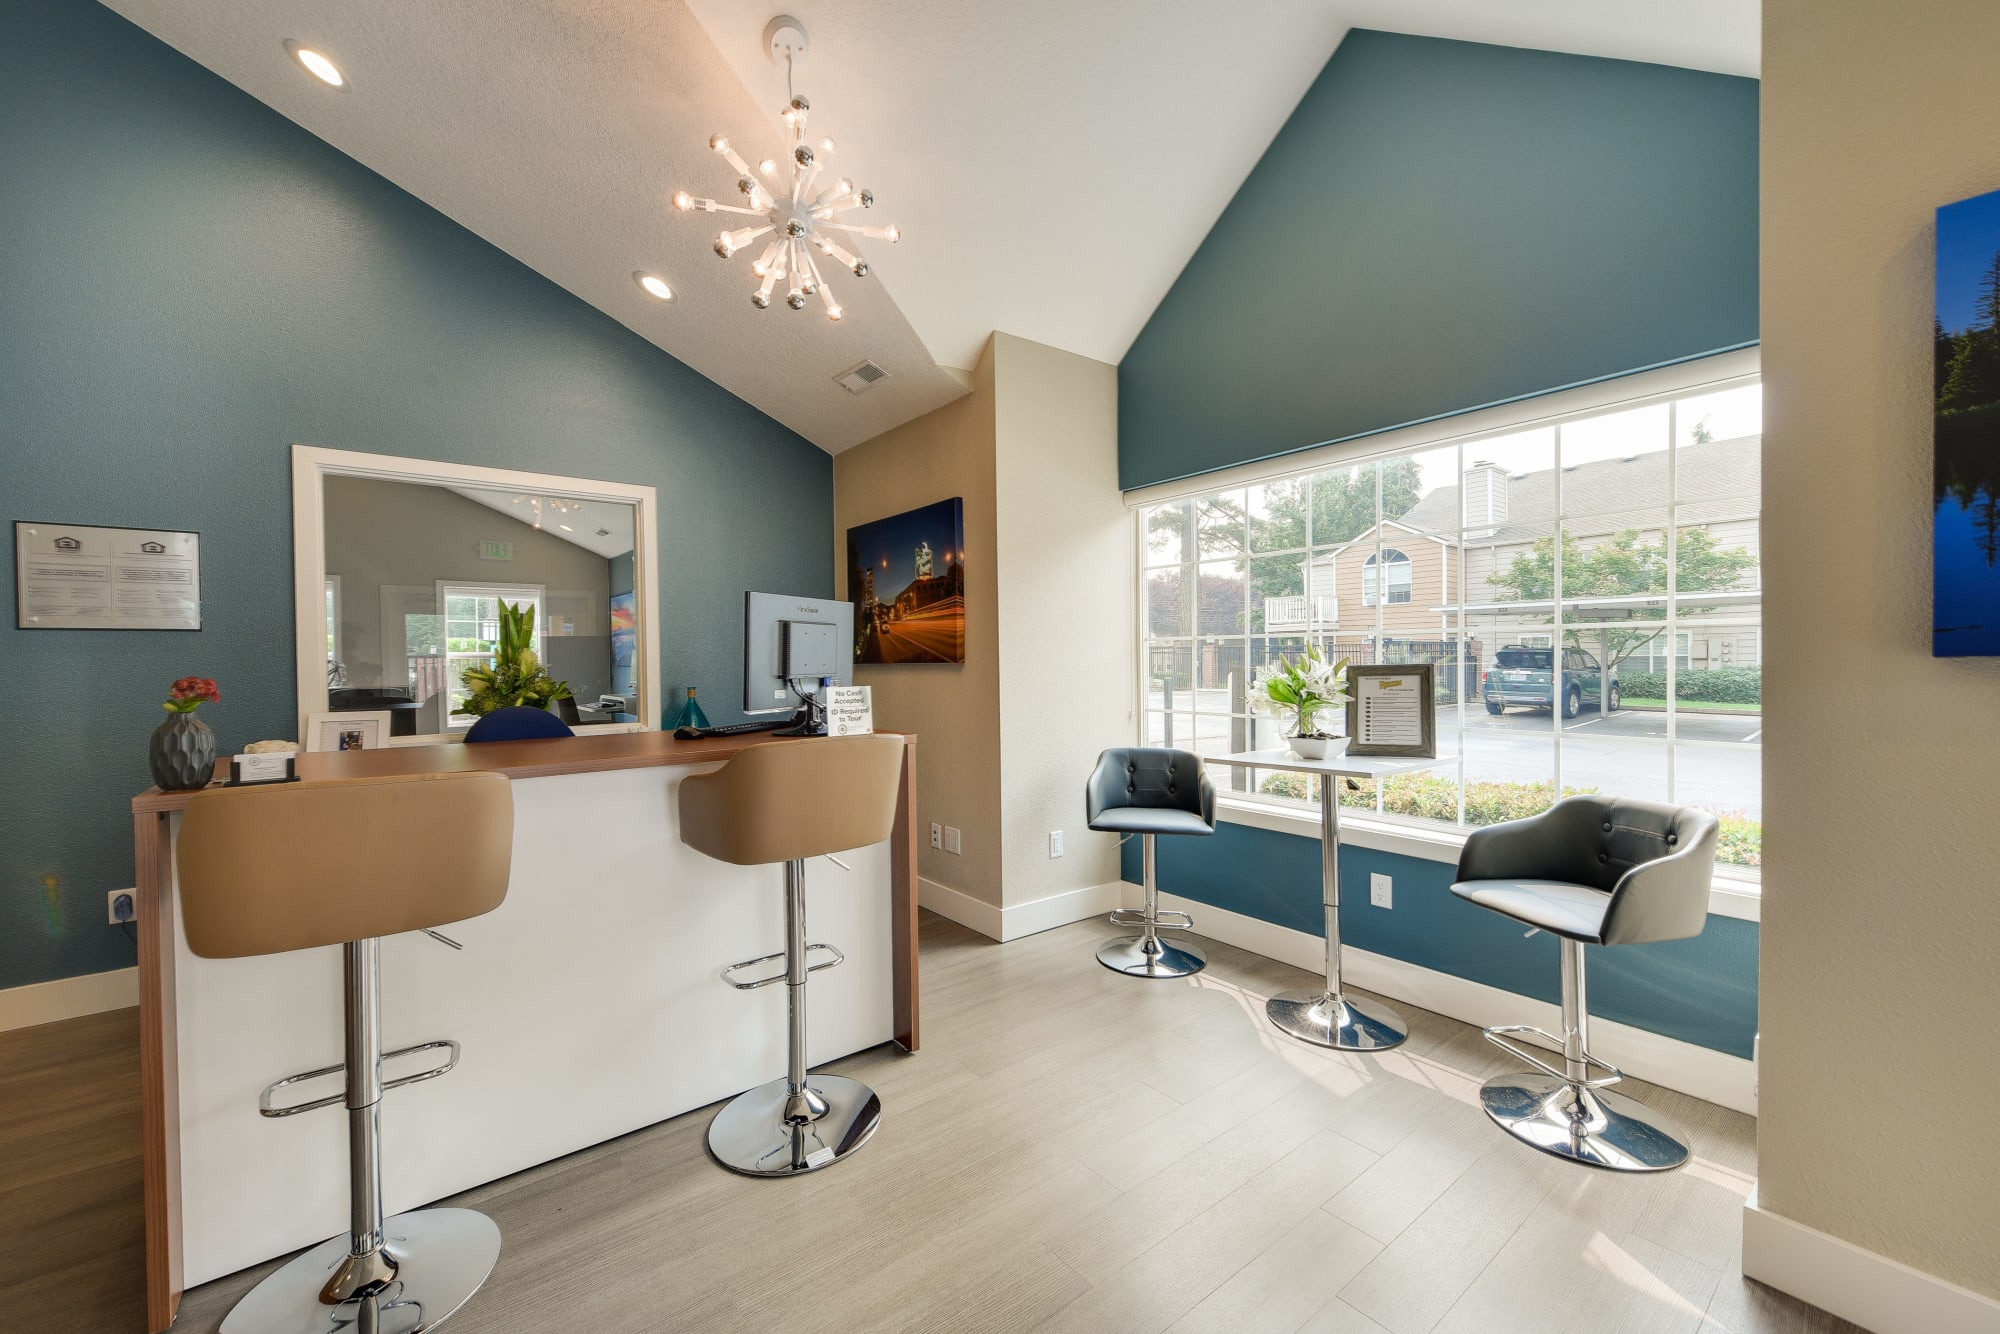 The newly renovated leasing office at Carriage Park Apartments in Vancouver, Washington